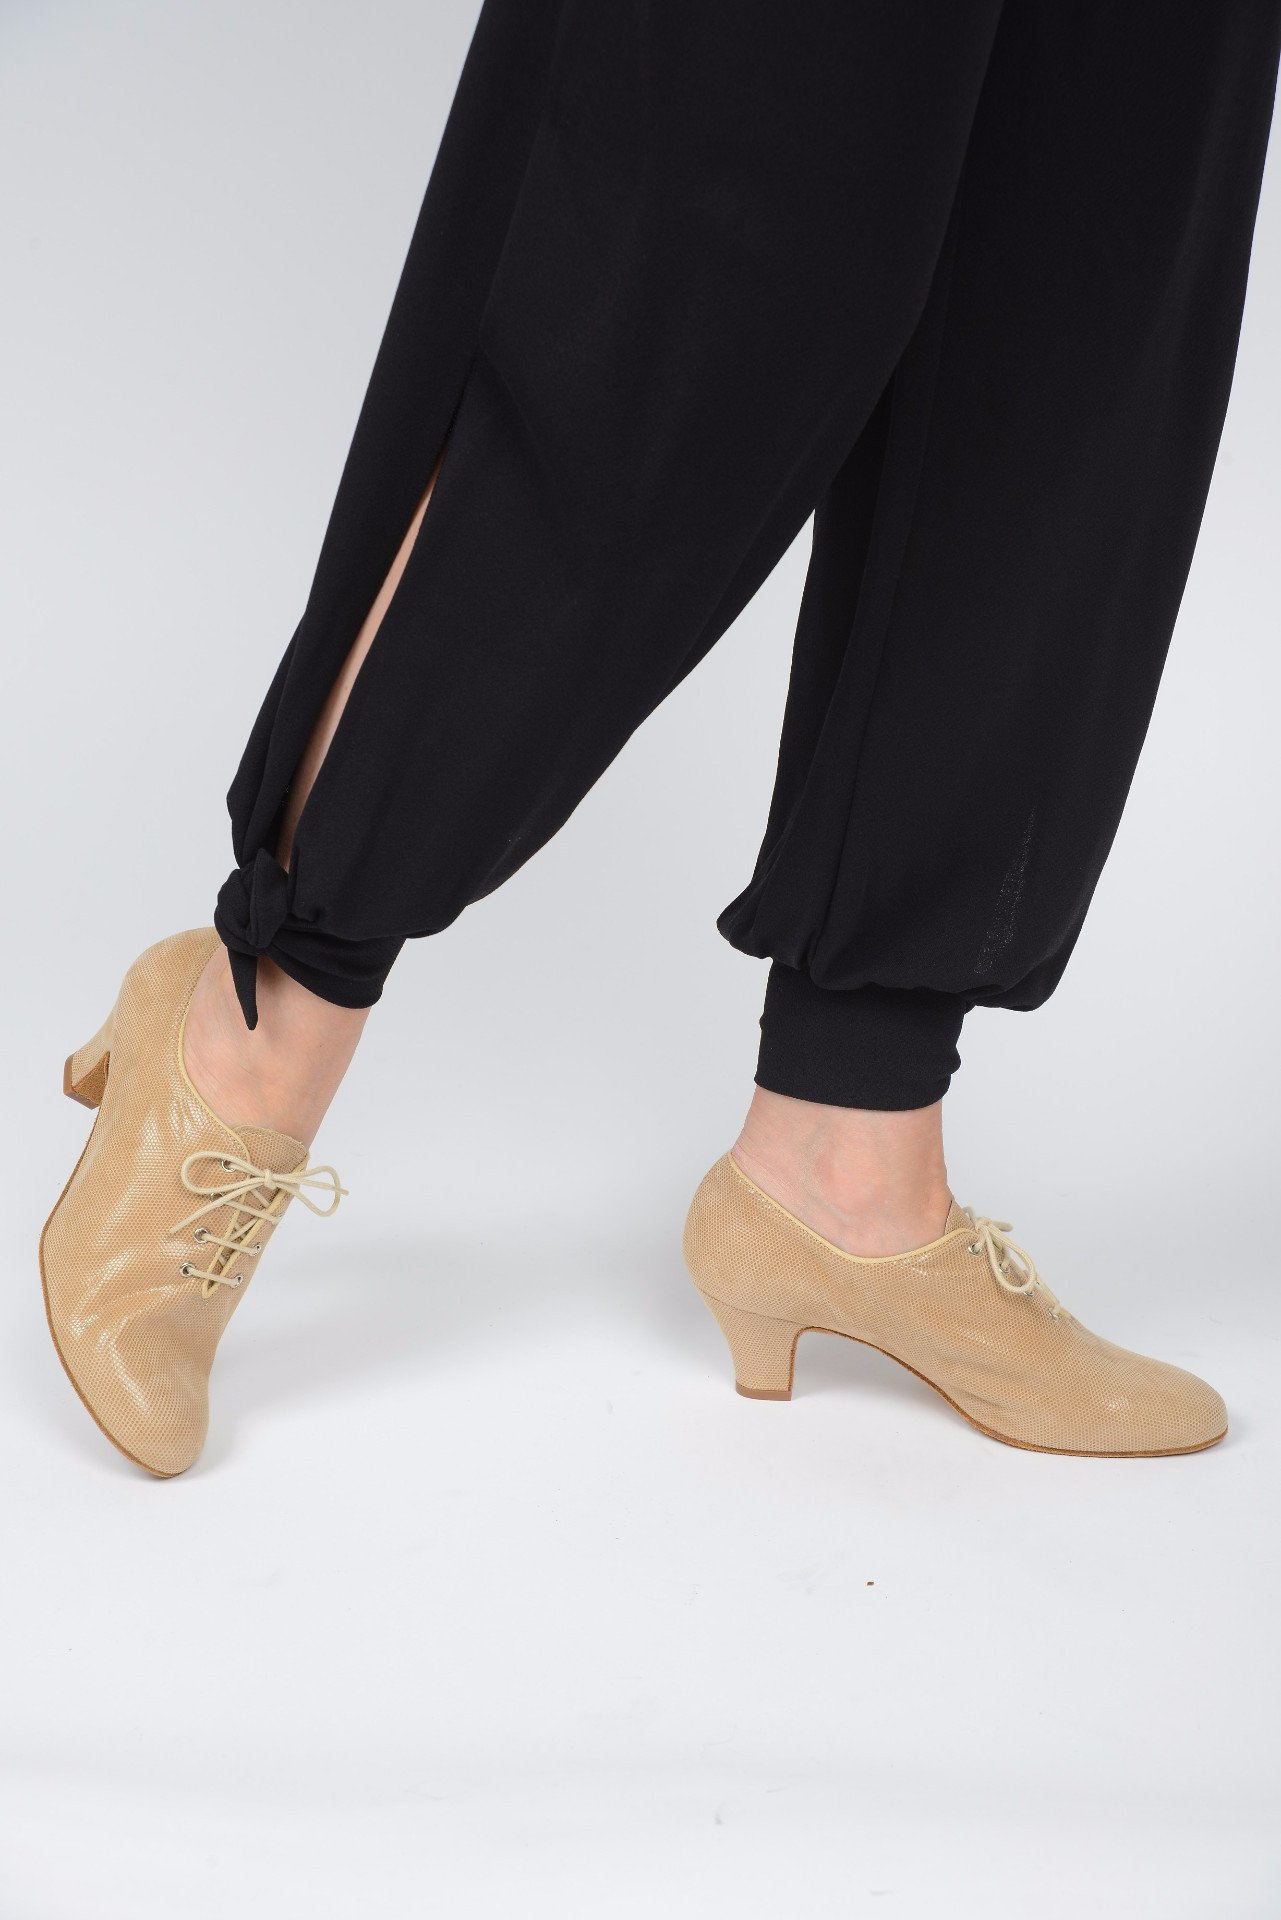 Italian Tango Shoes: Trainers - Beige Lame Leather by Paoul - Axis Tango